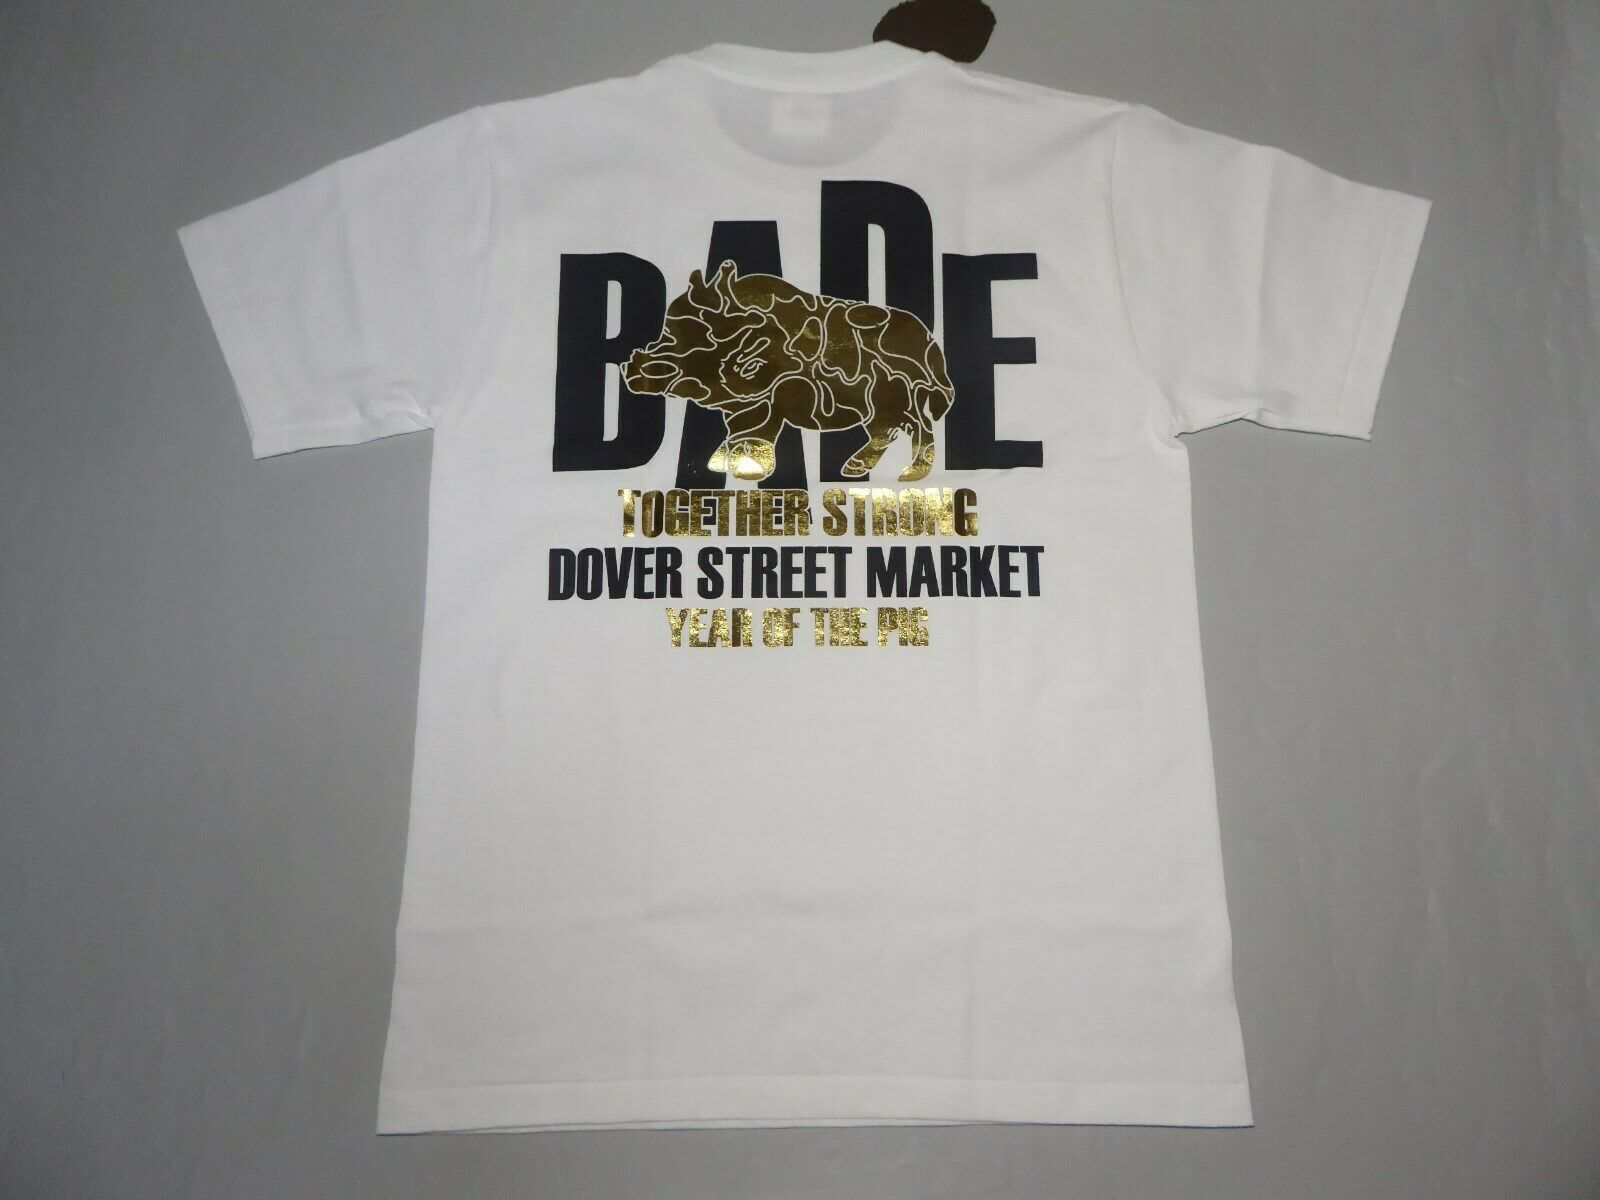 19869 bape year of the boar DSMG white tee M